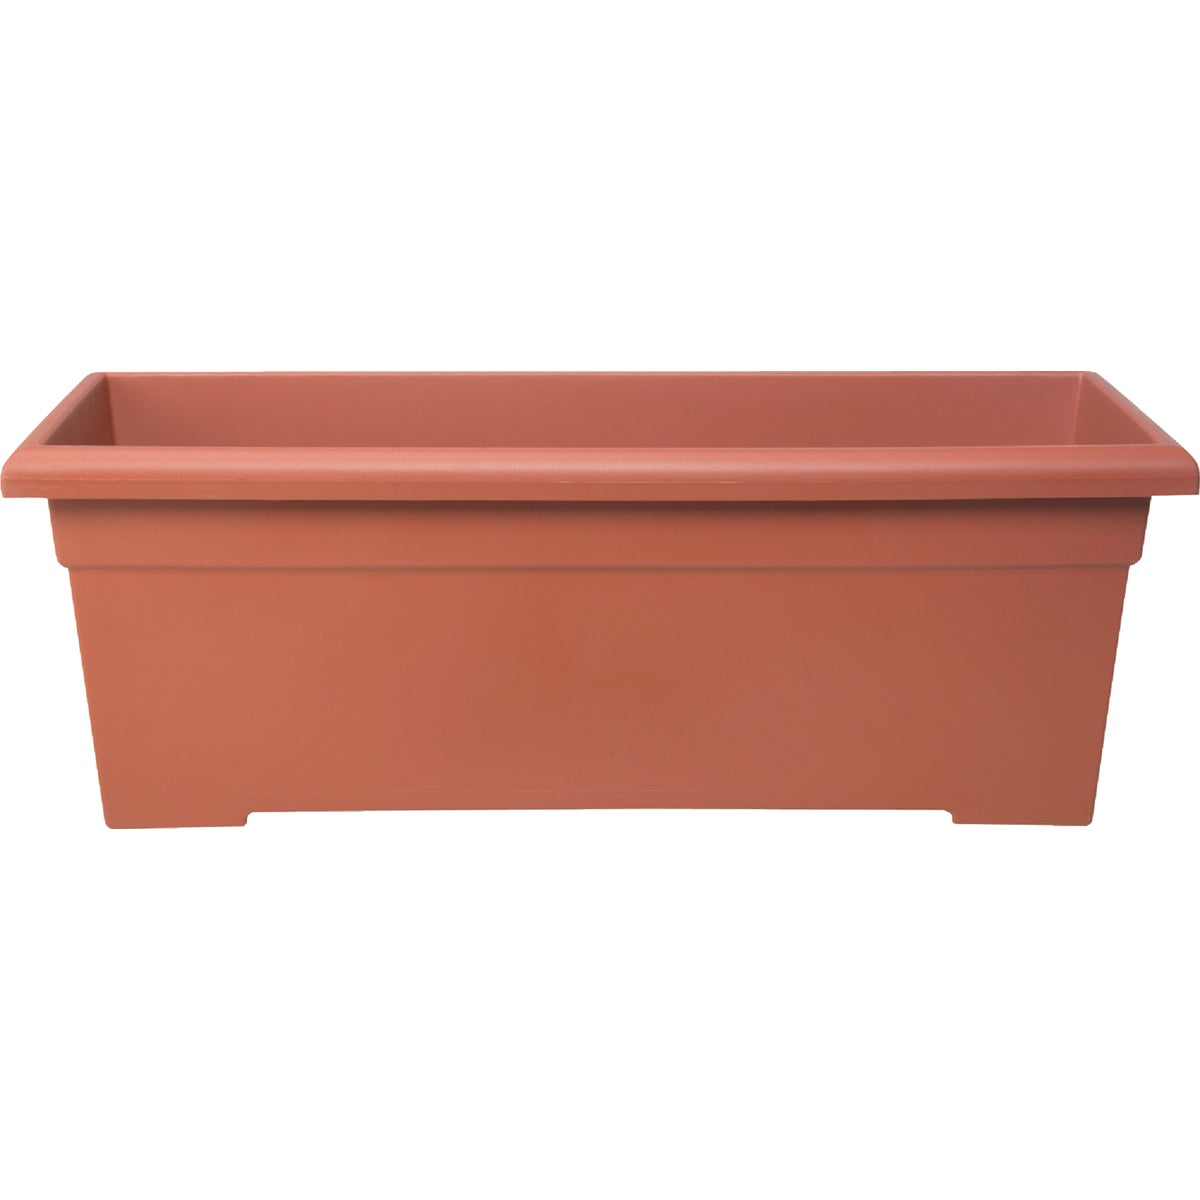 "28""CLAY POLY PLANTER BOX - ROP28000E35 by Myers Industries Inc"